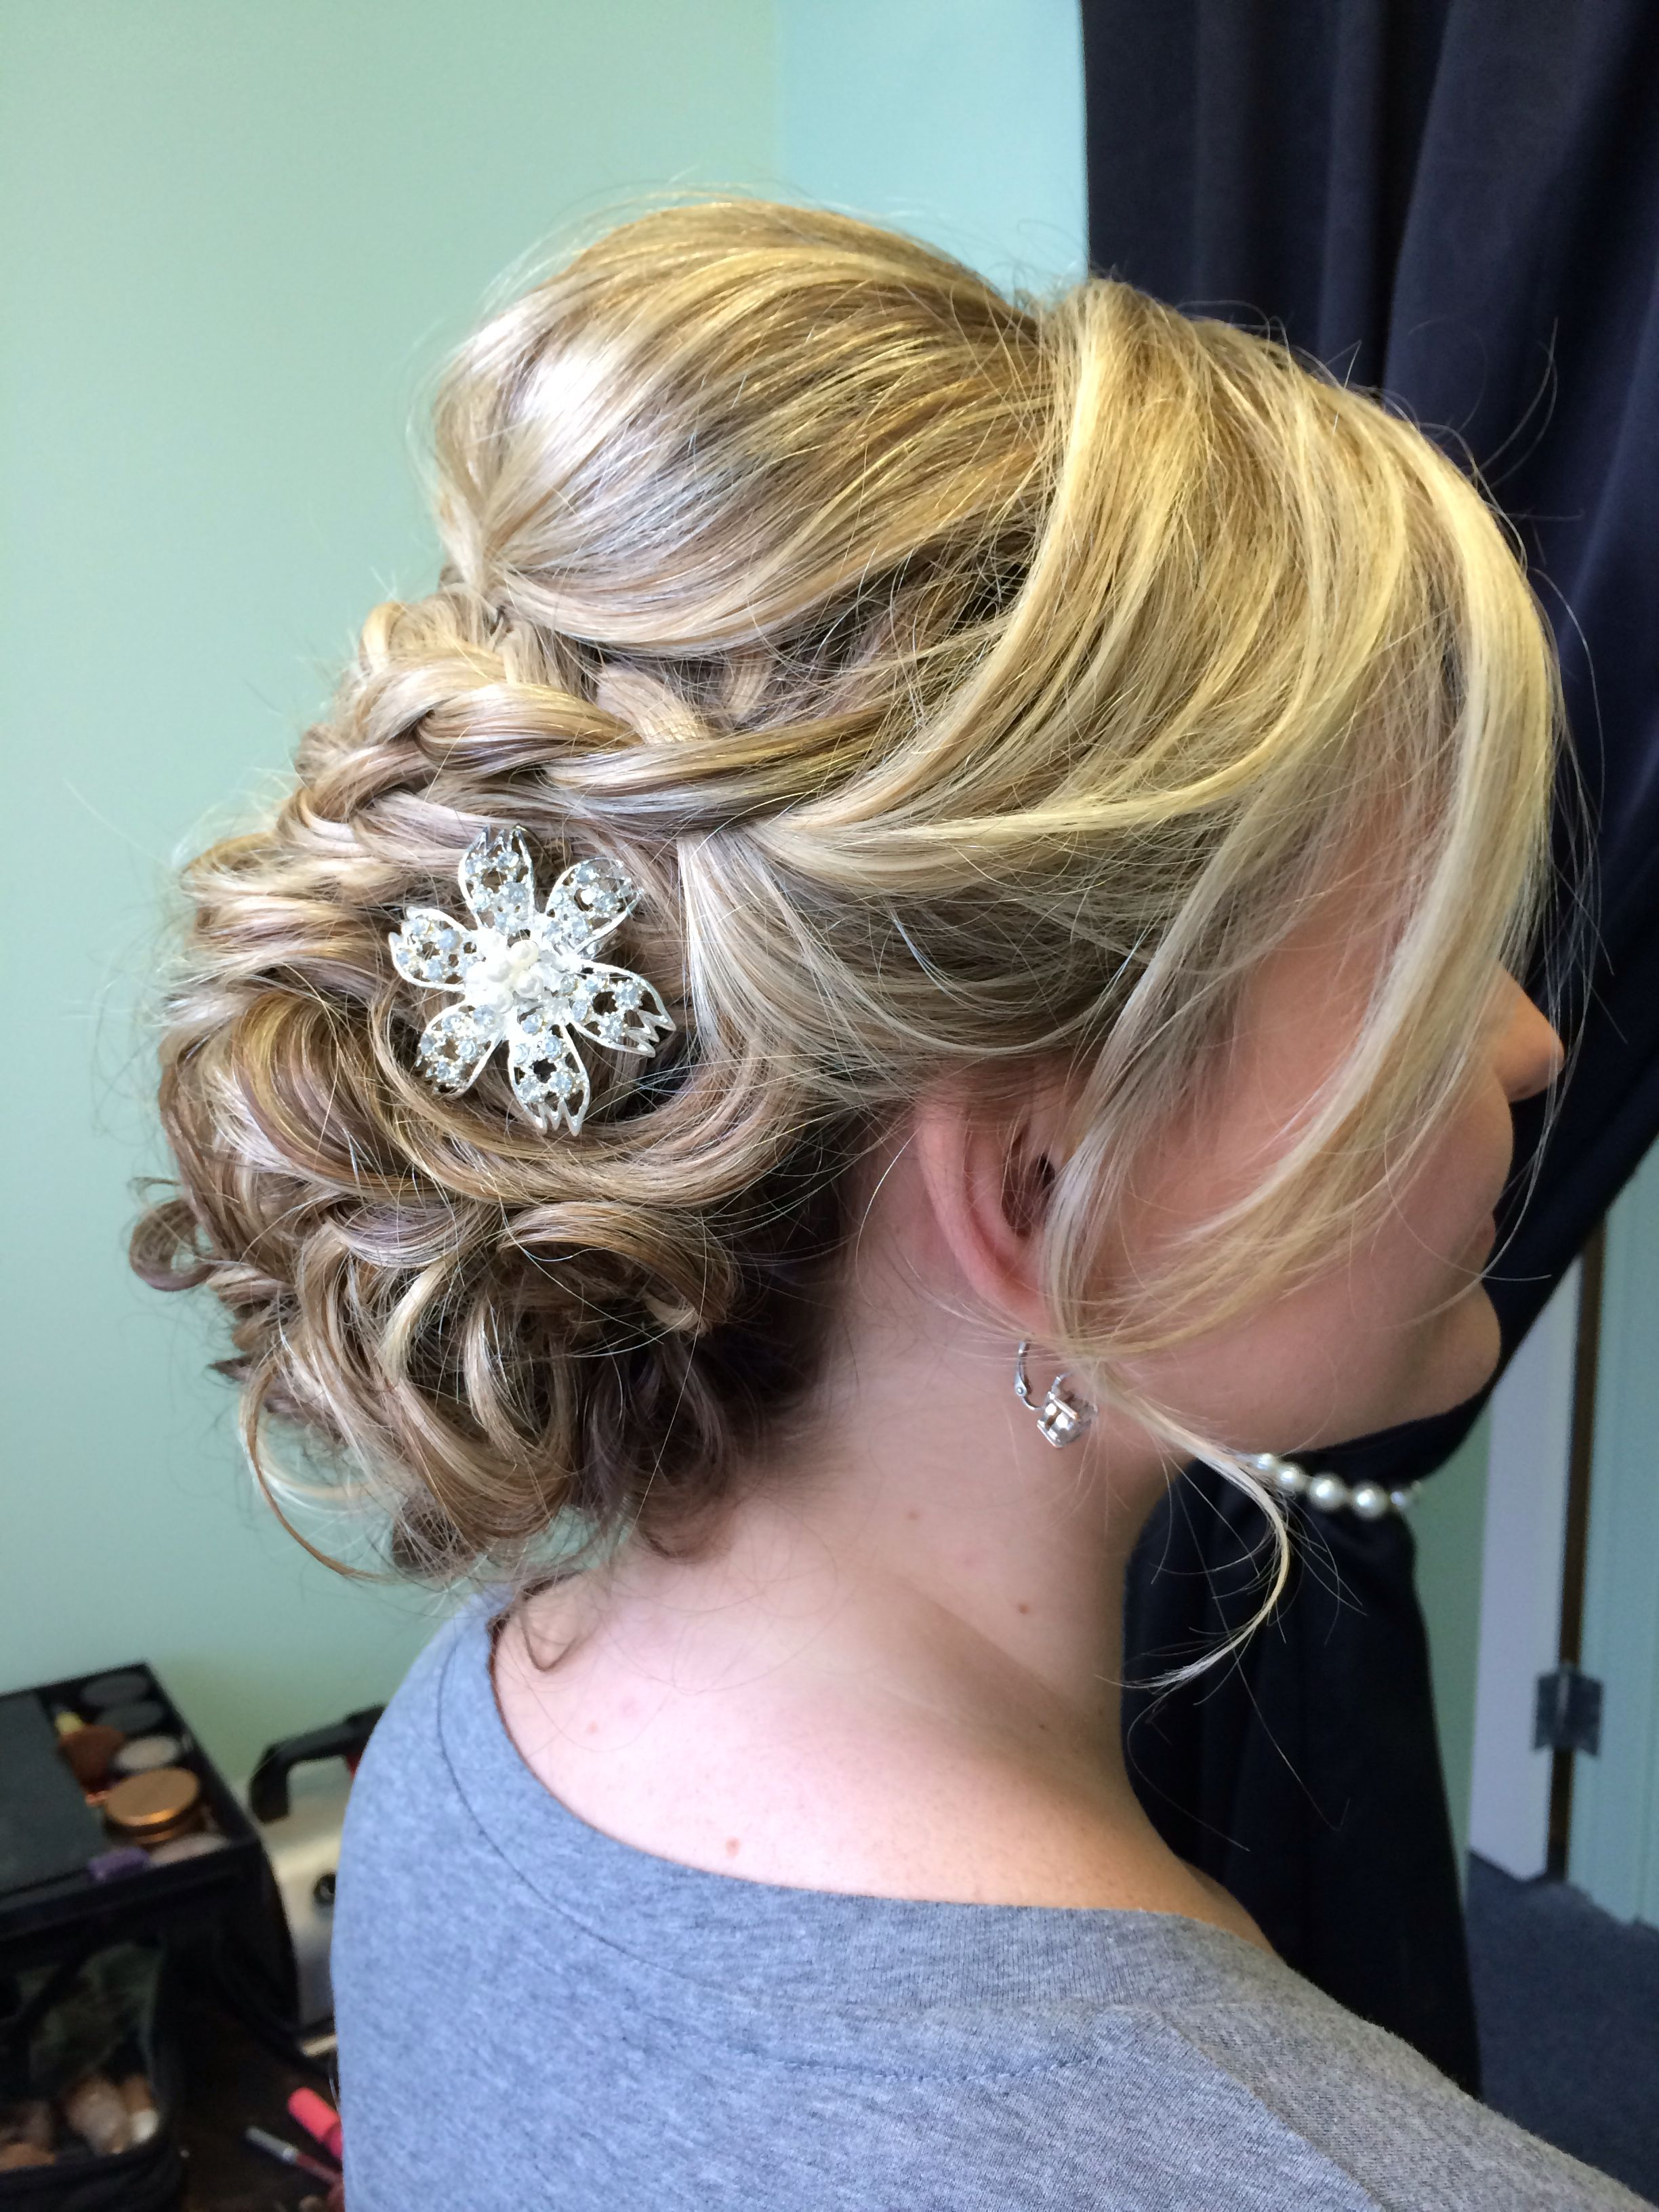 Braided romantic up-do by Jennette at Beauty Couture Inc